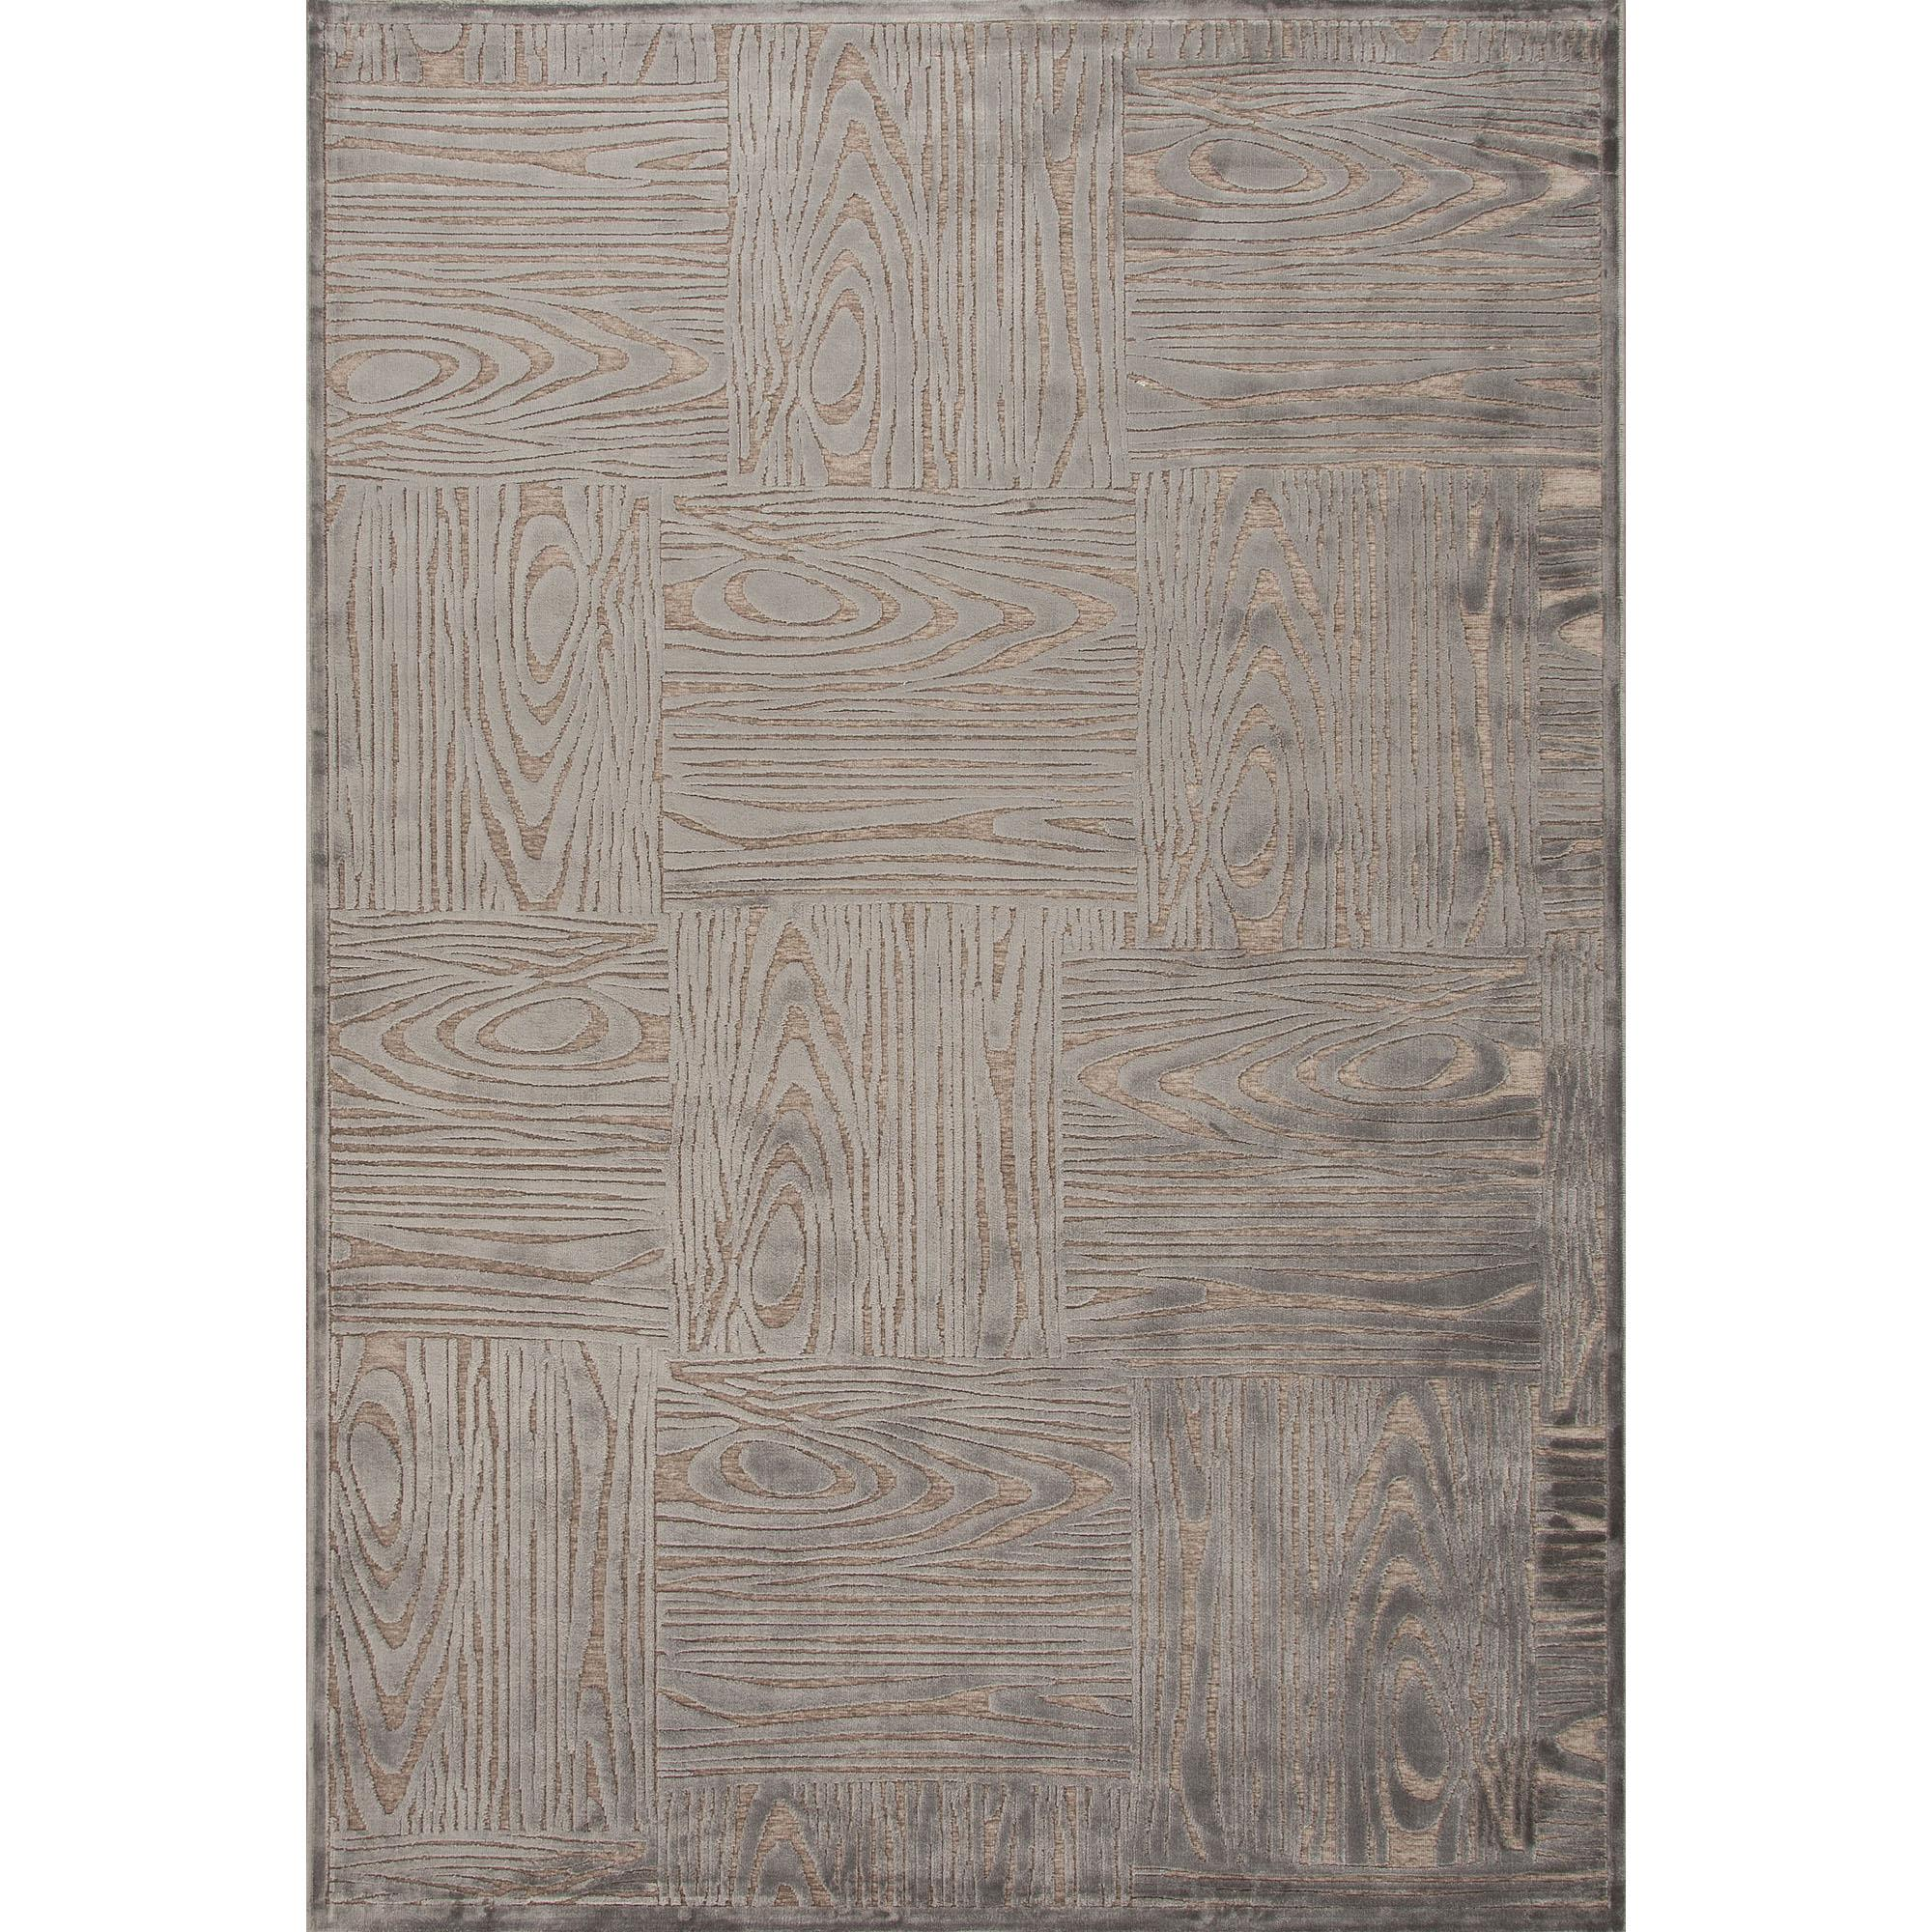 Fables 2 x 3 Rug by JAIPUR Living at Sprintz Furniture